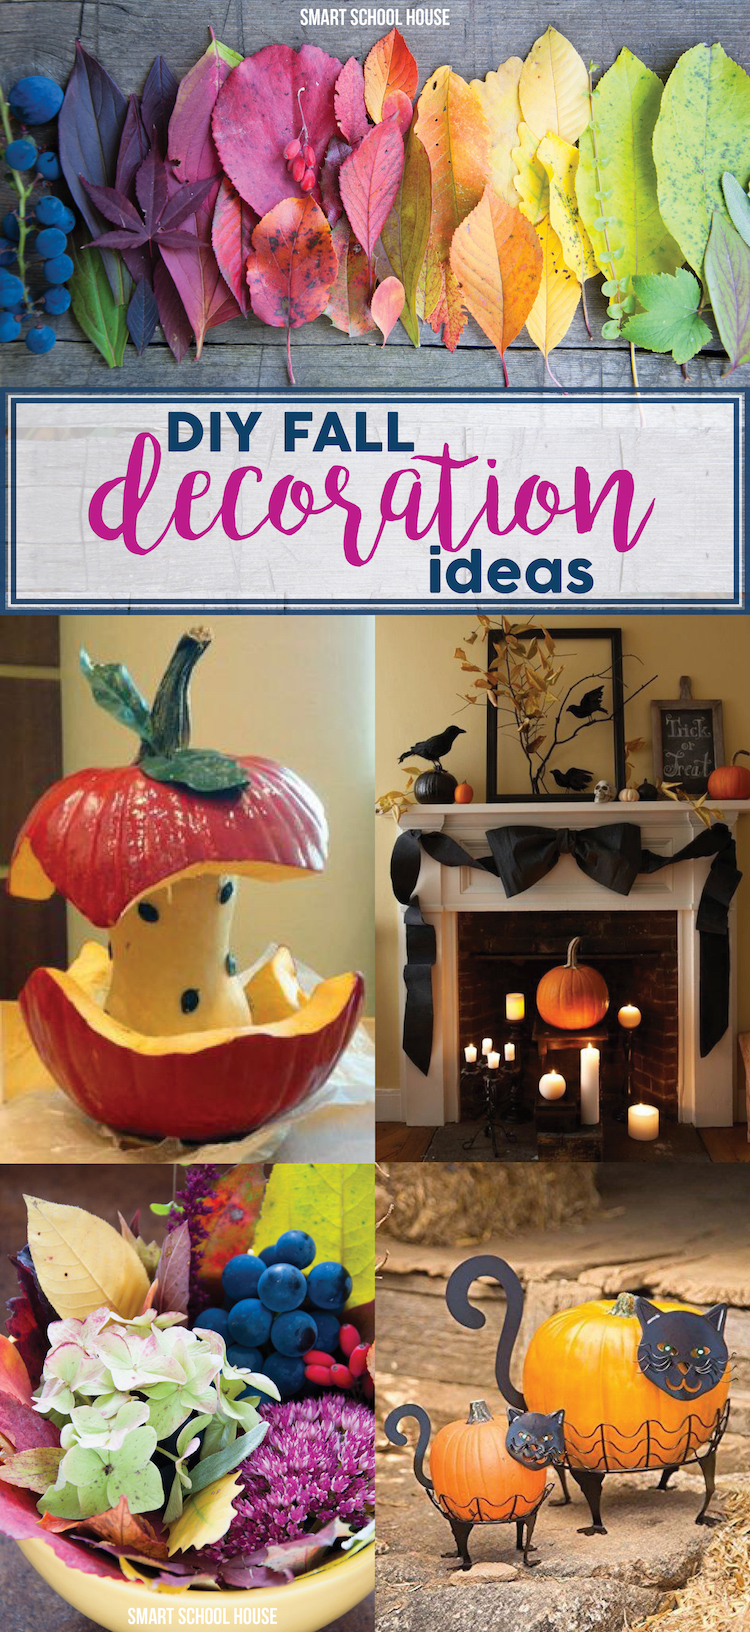 Diy Fall Decoration Ideas